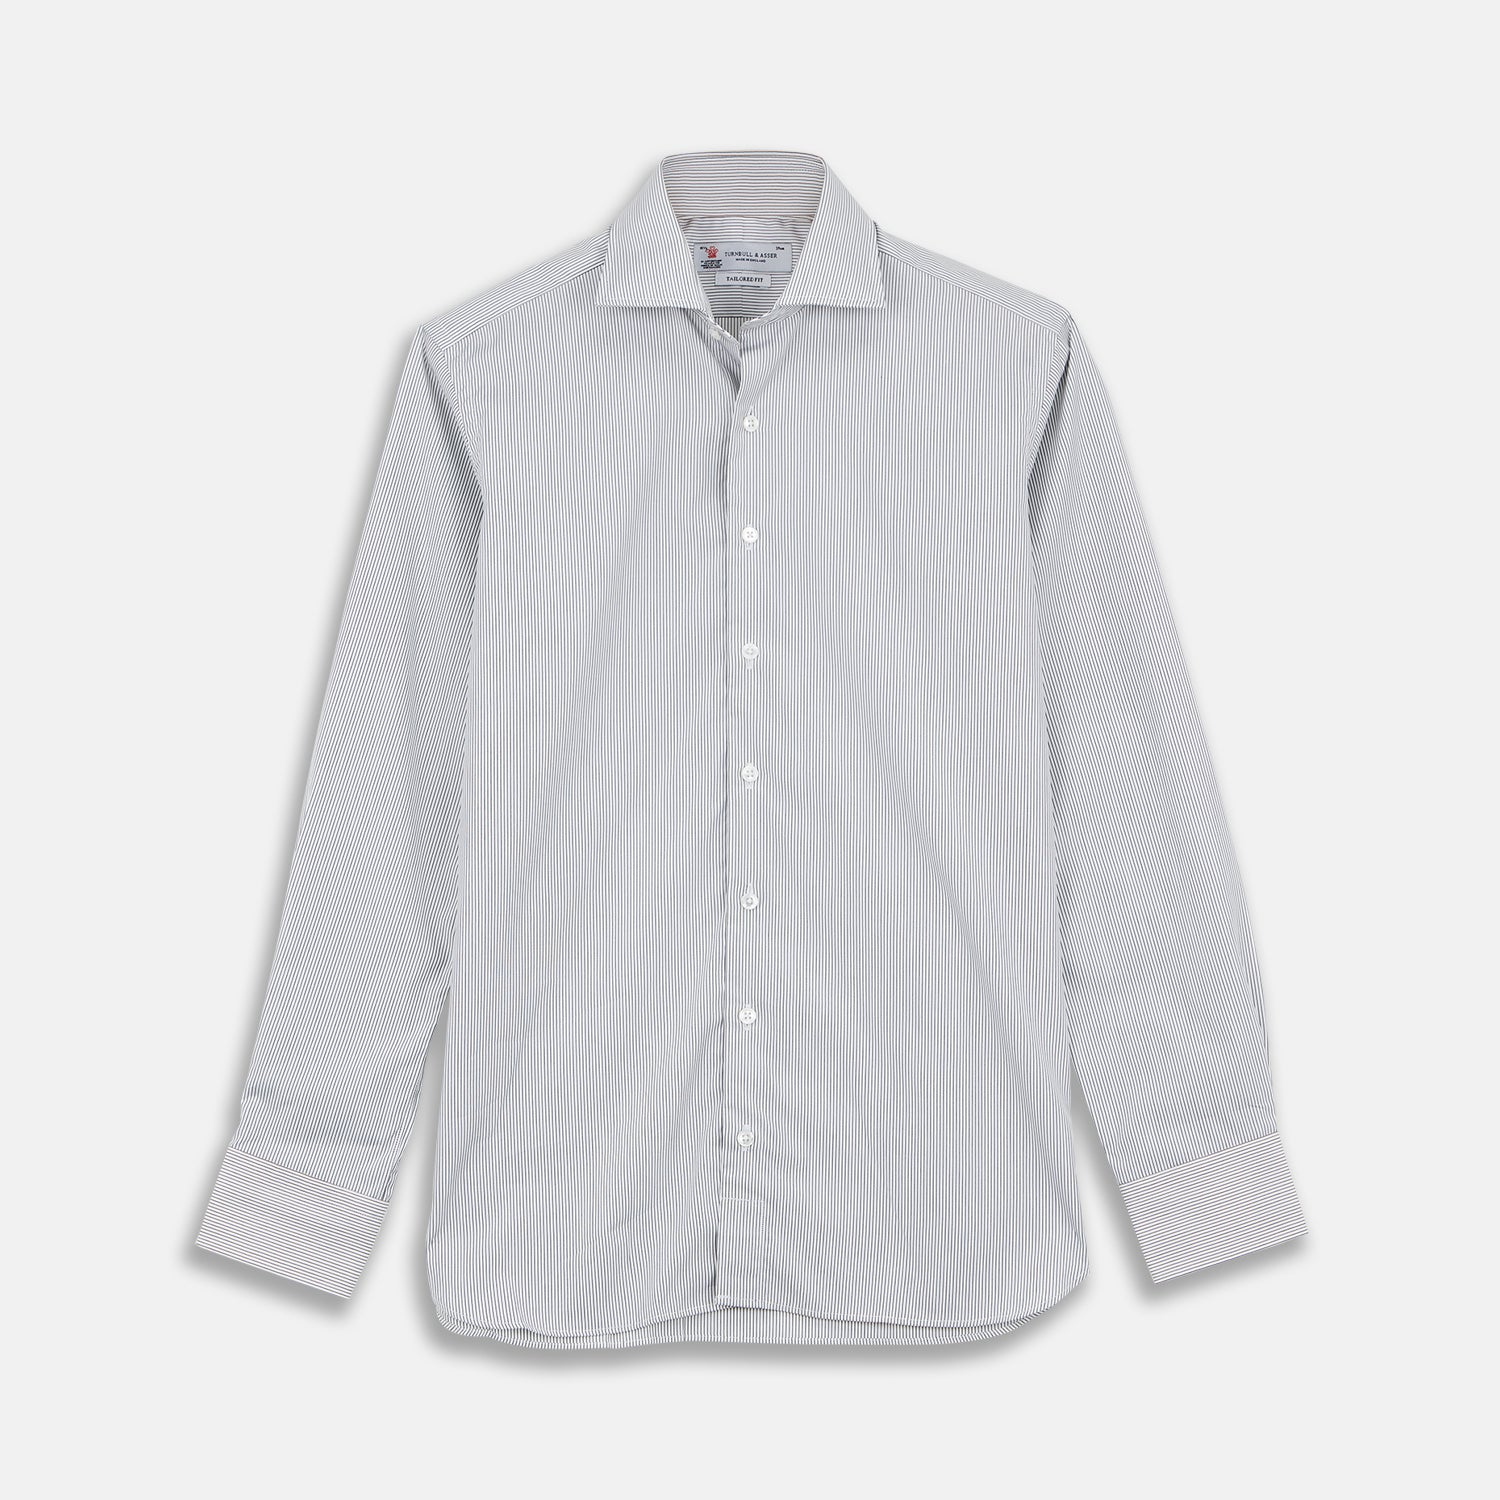 Tailored Fit Grey and White Pinstripe Shirt with Kent Collar and 2-Button Cuffs